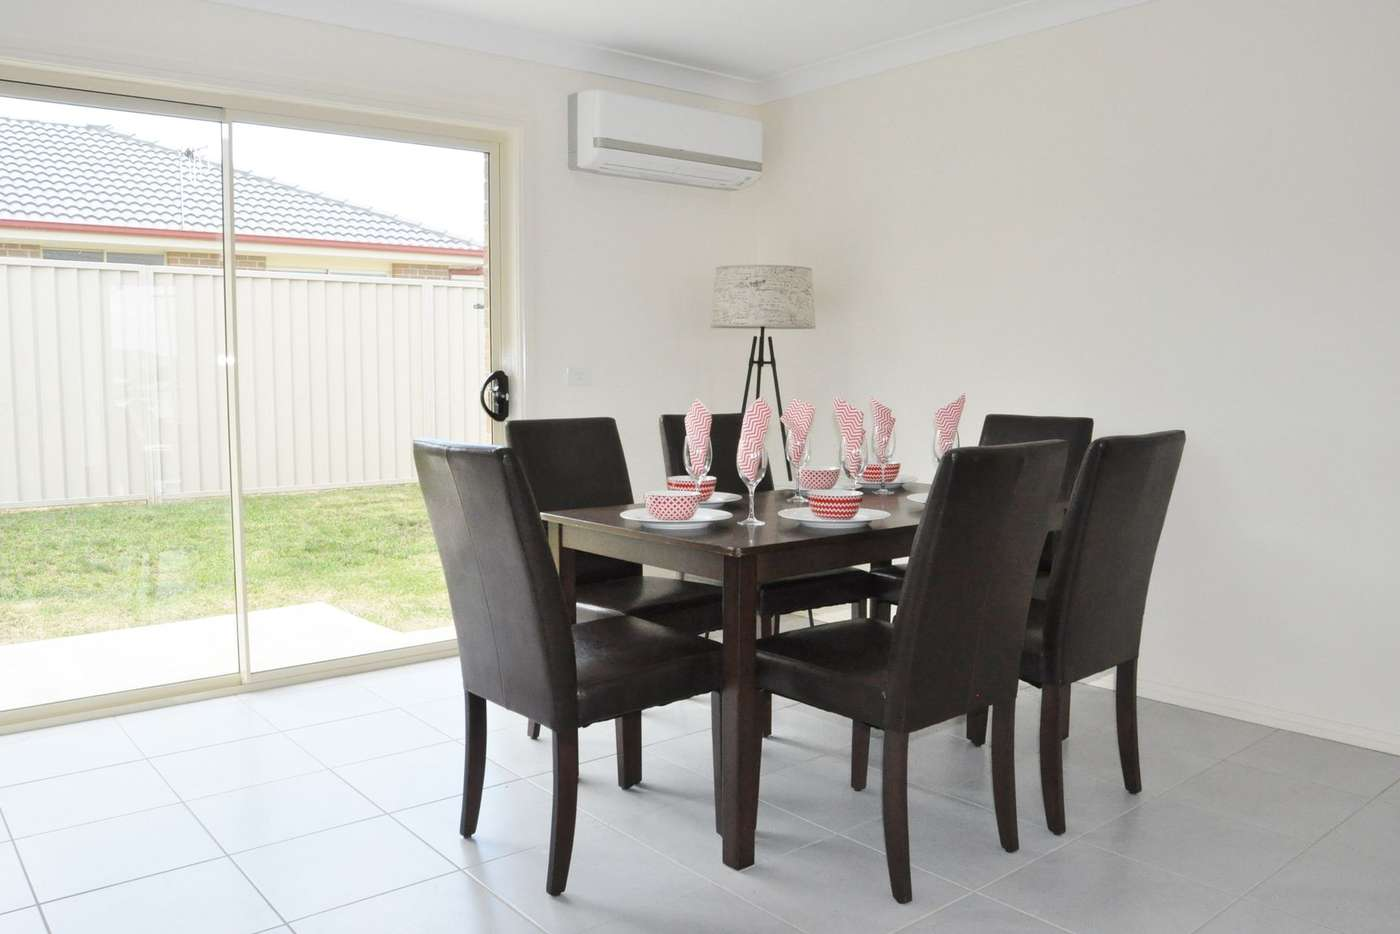 Fifth view of Homely house listing, 1 French Smith Place, Bathurst NSW 2795